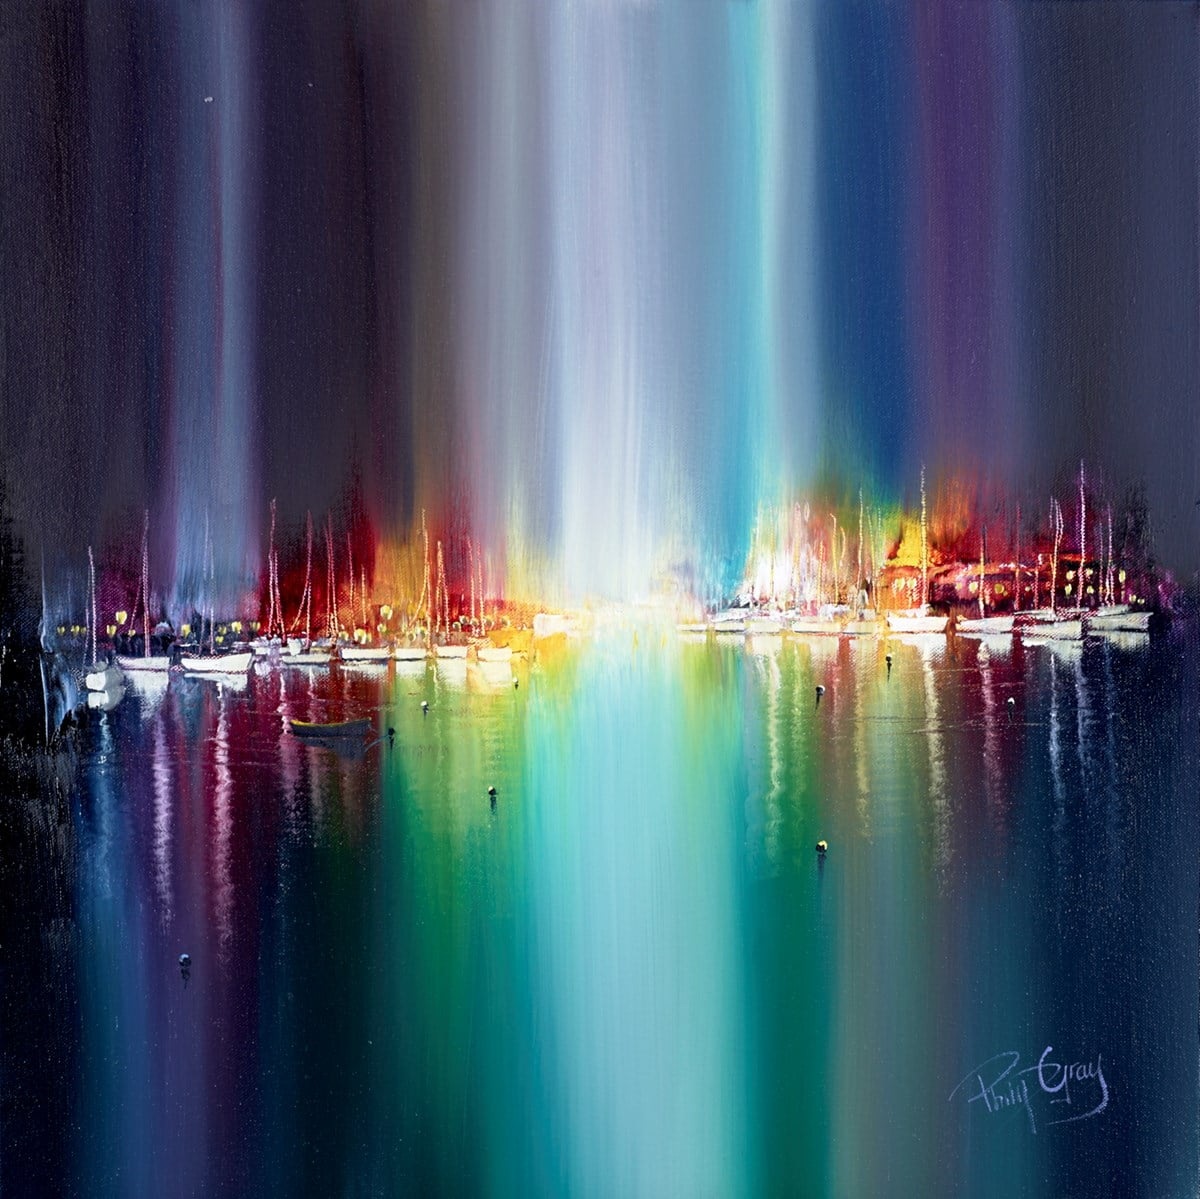 View of the Harbour Lights ~ Philip Gray